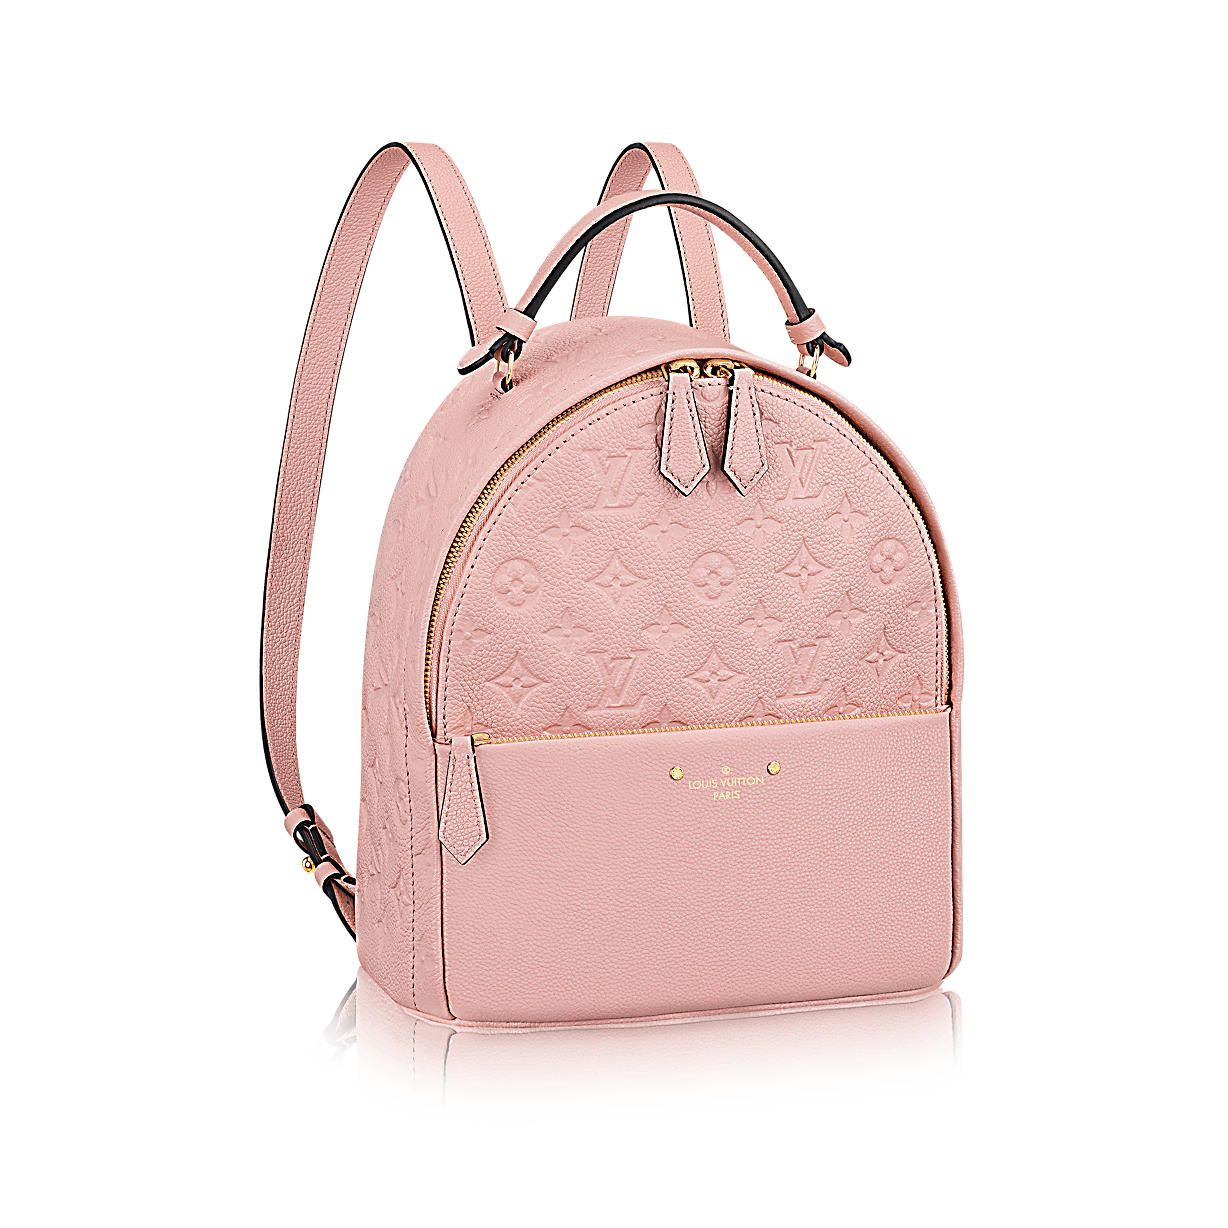 f3b952b66205 Sorbonne Backpack Monogram Empreinte WOMEN Handbags   LOUIS VUITTON ...